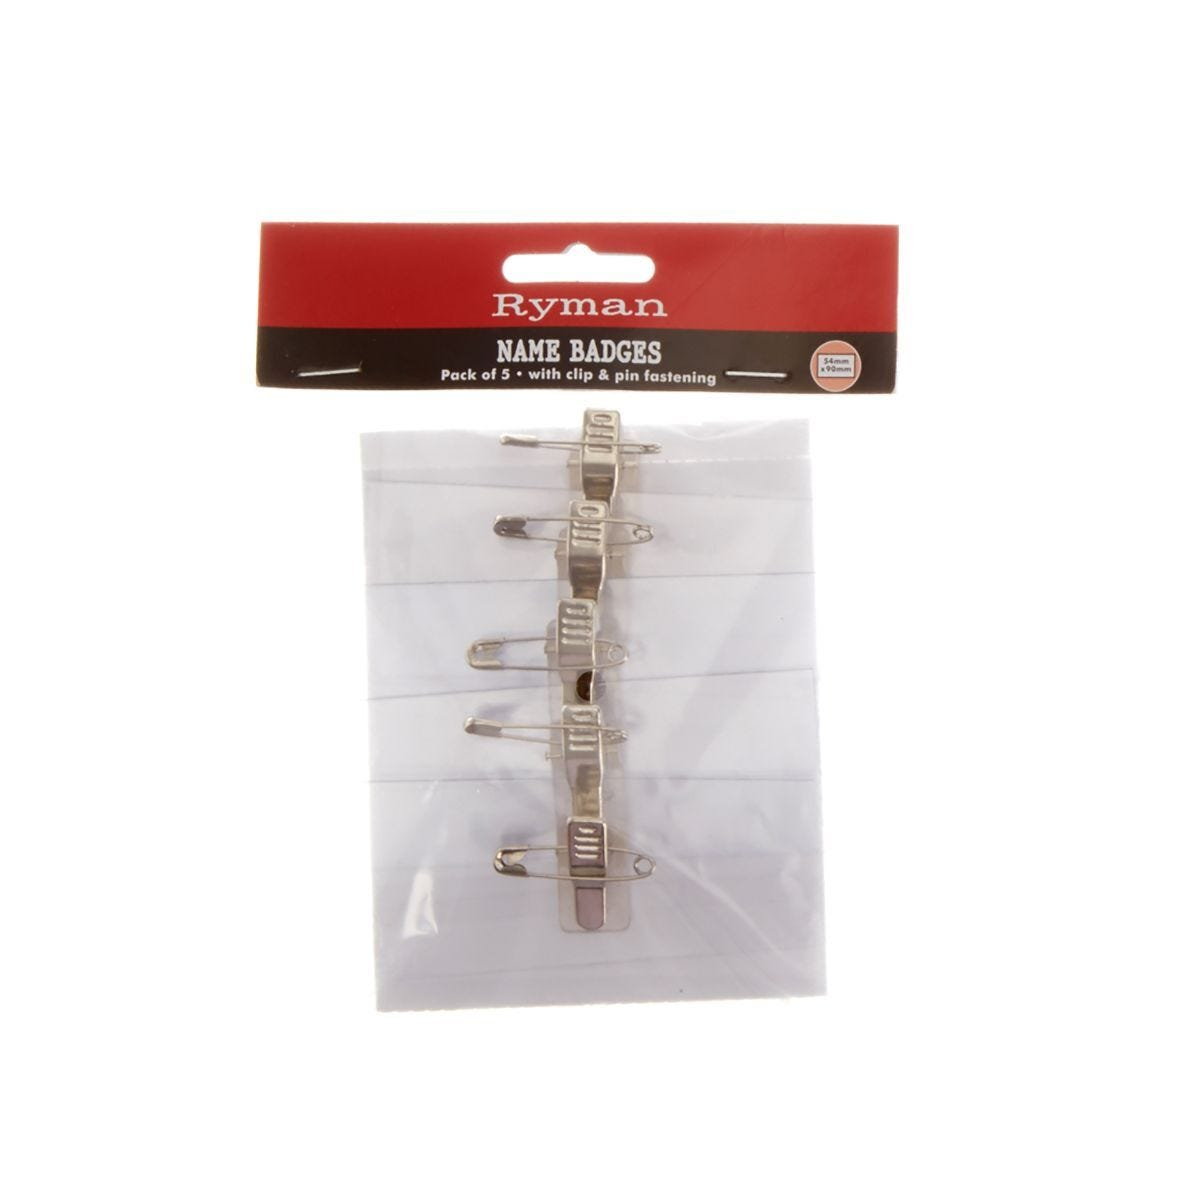 Ryman Name Badge Clip and Pin Pack of 5